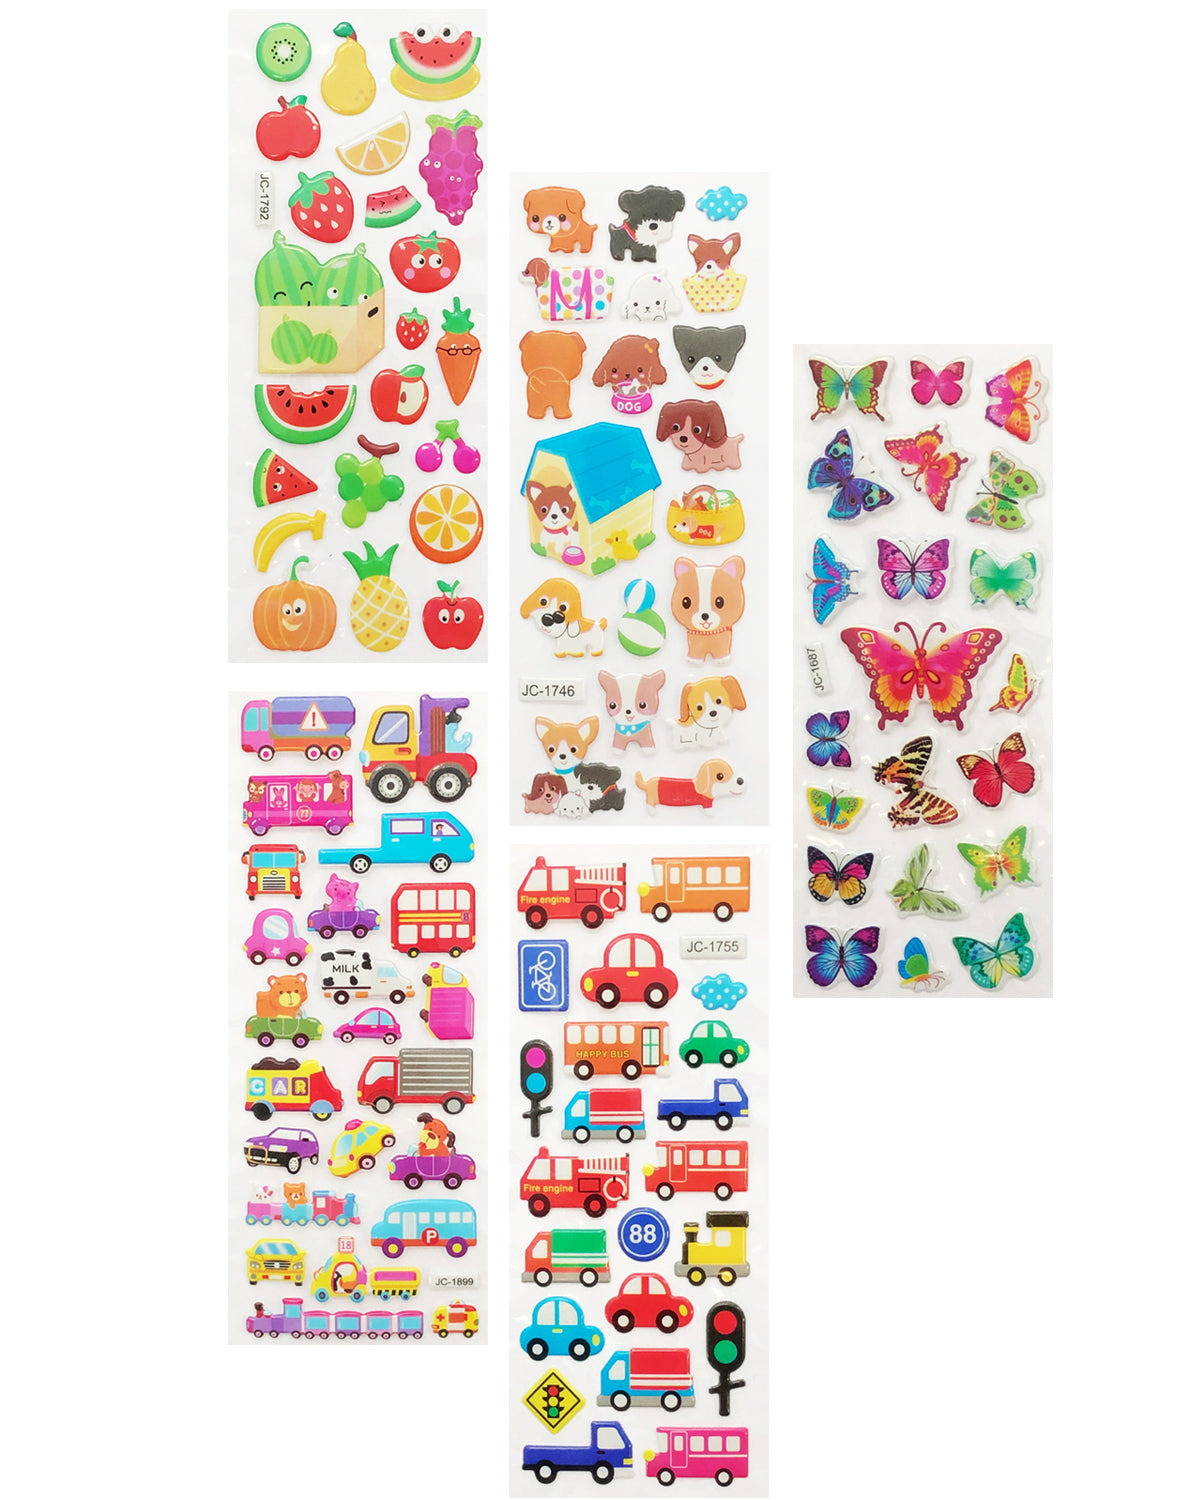 Wrapables 3D Puffy Stickers Bubble Stickers for Crafts & Scrapbooking